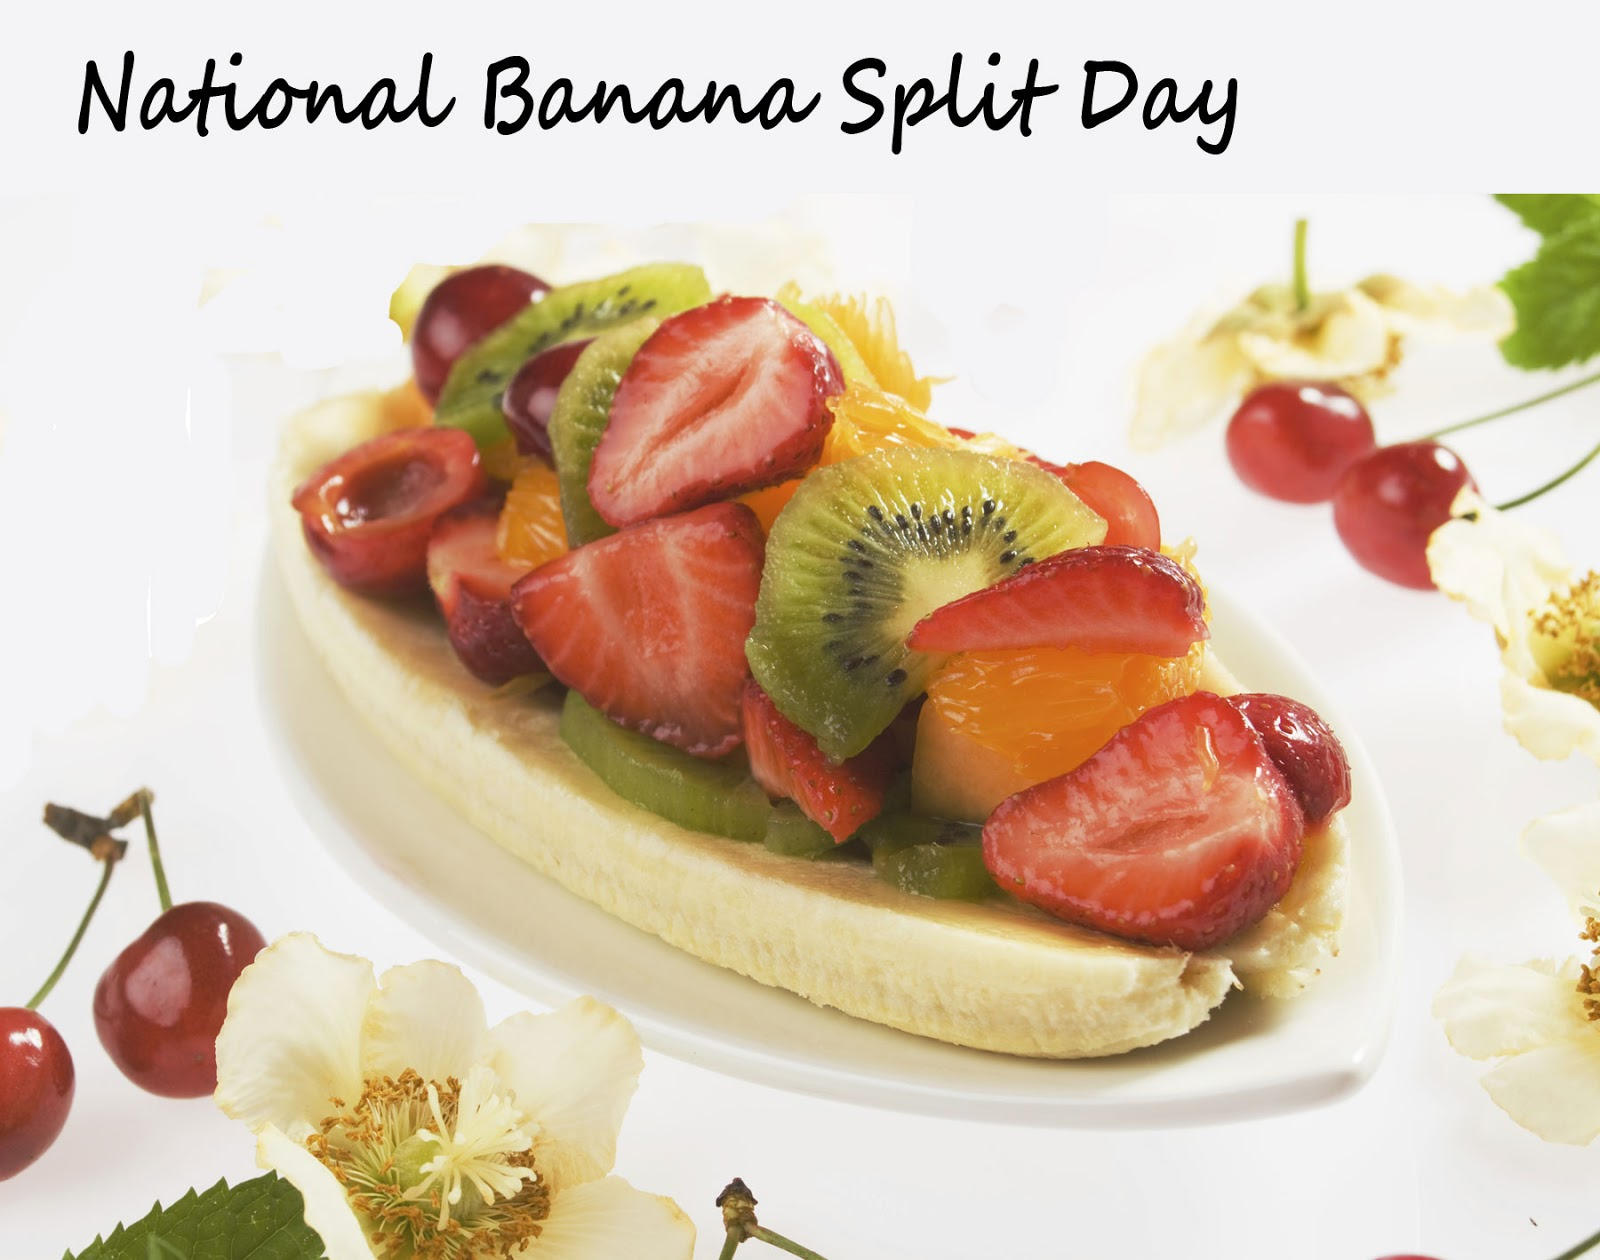 National Banana Split Day 2019